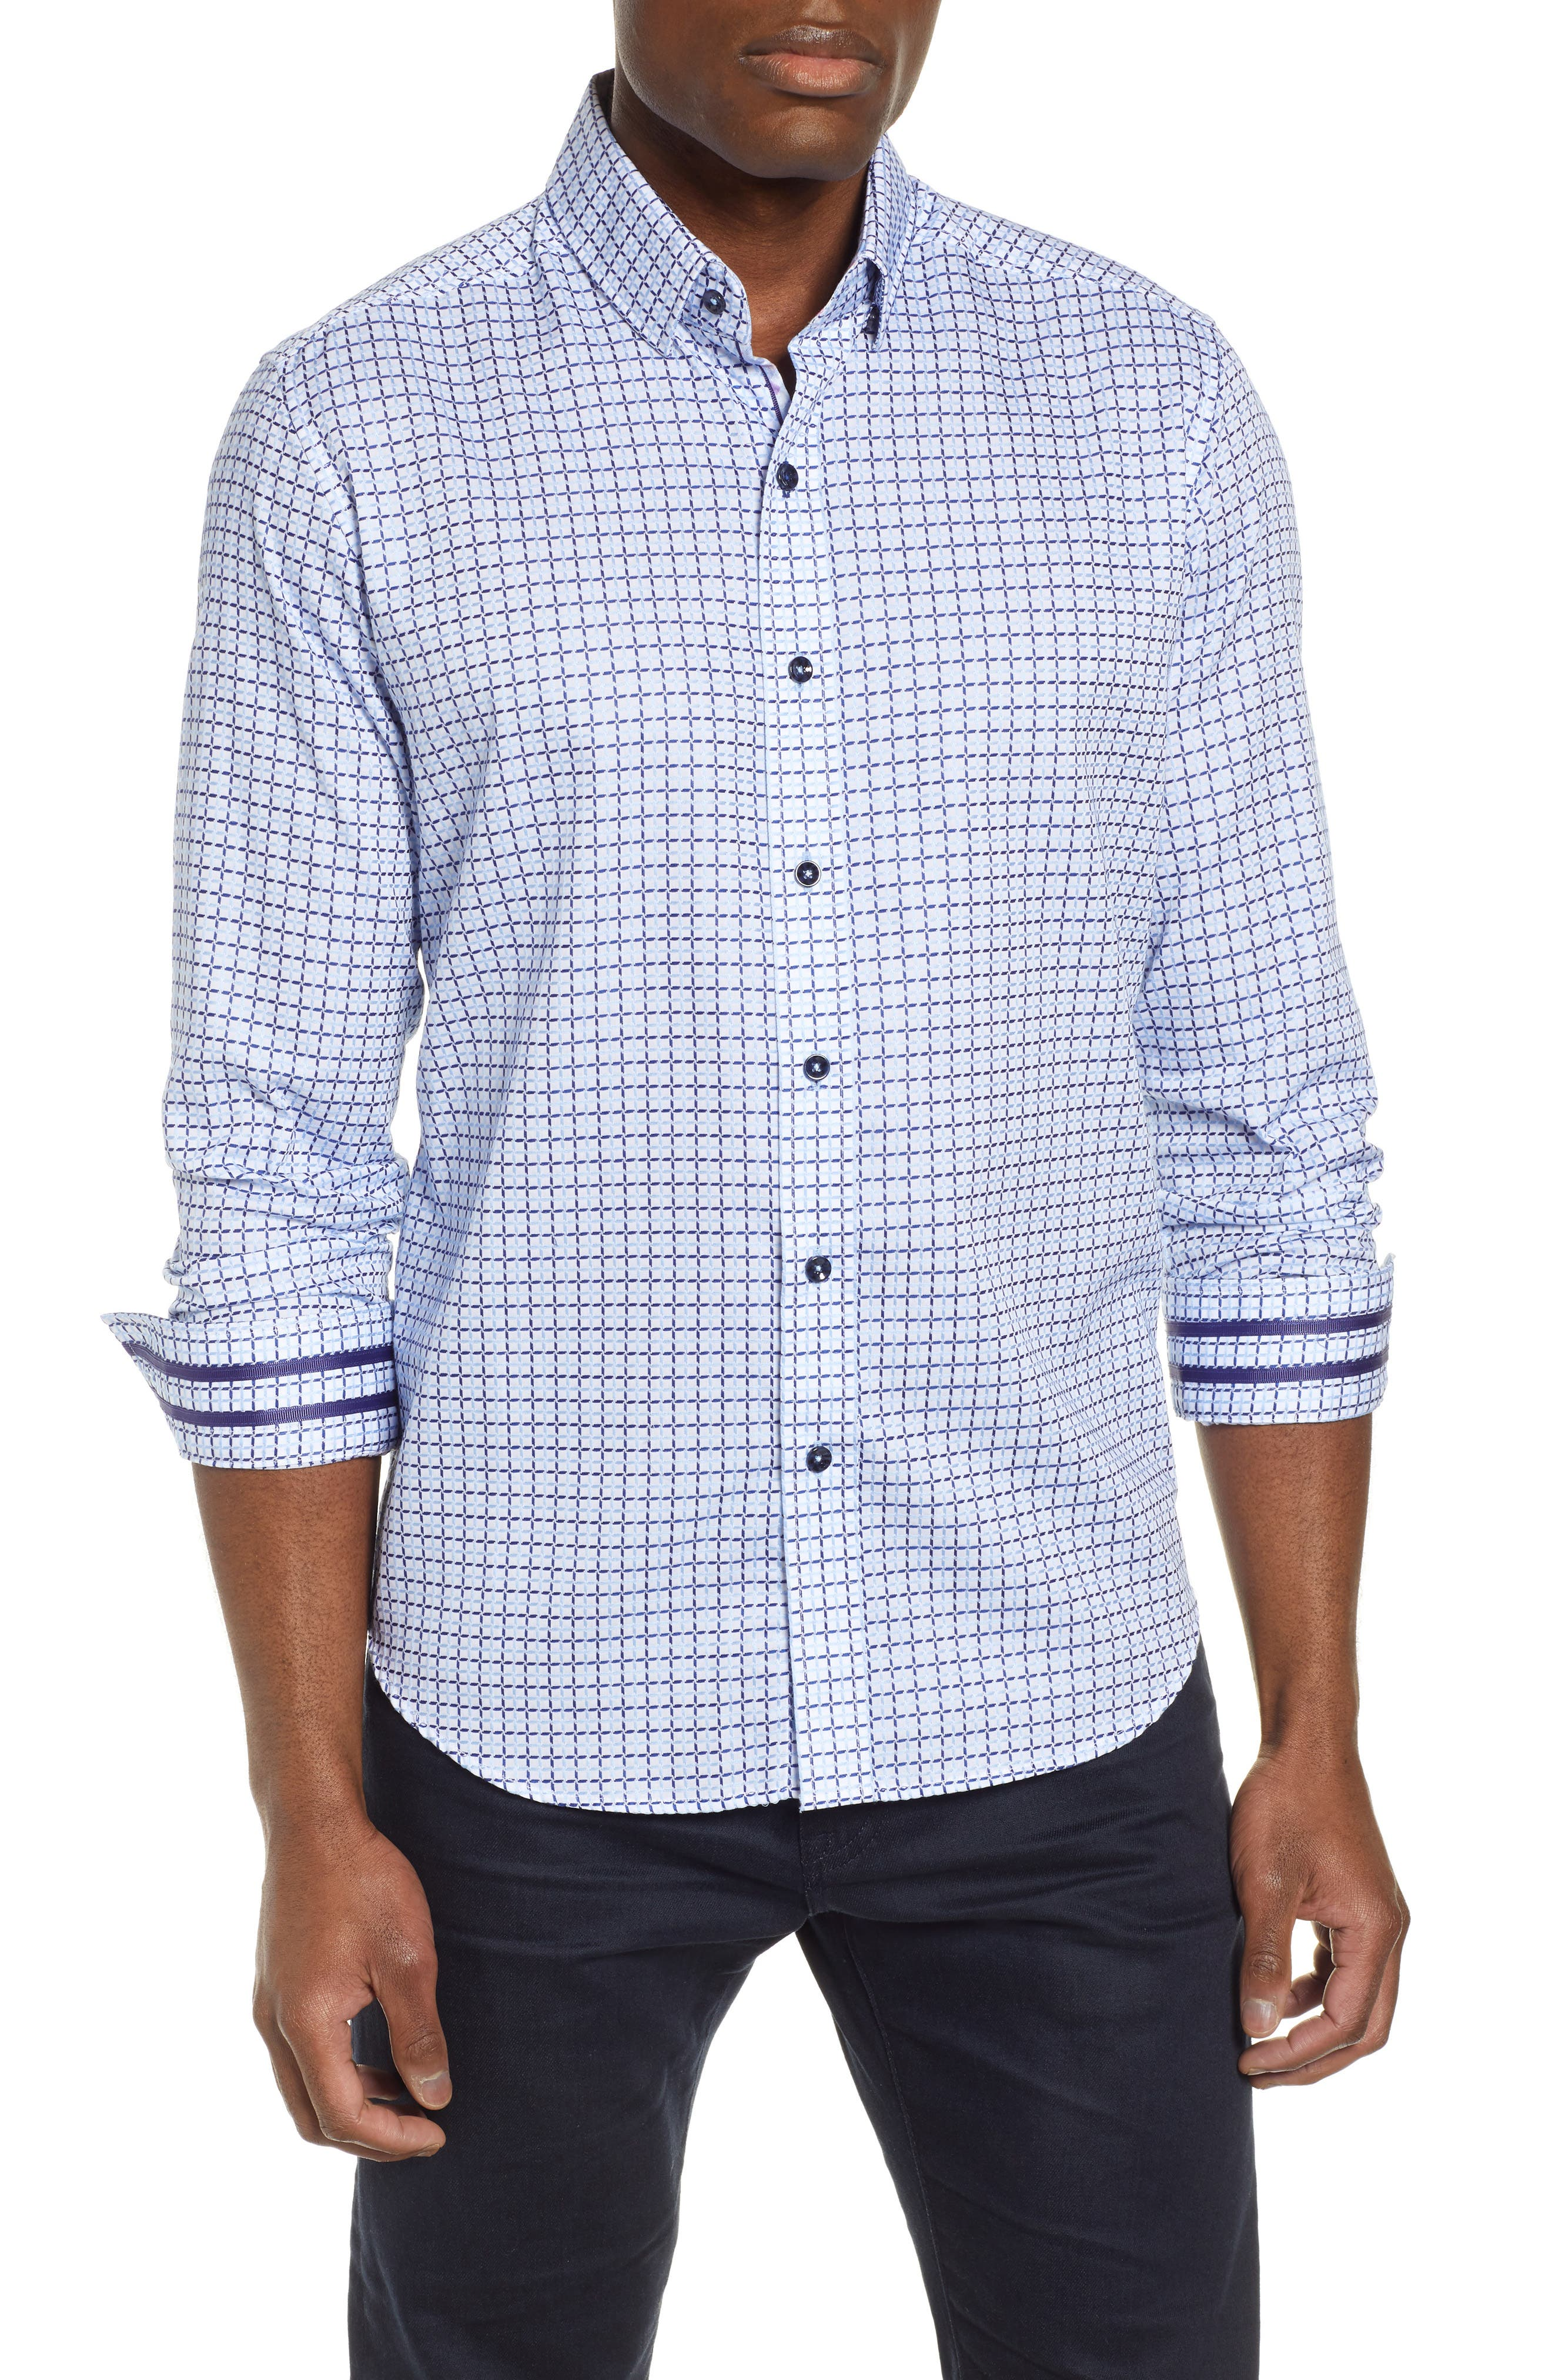 ROBERT GRAHAM Axton Tailored Fit Check Sport Shirt, Main, color, BLUE